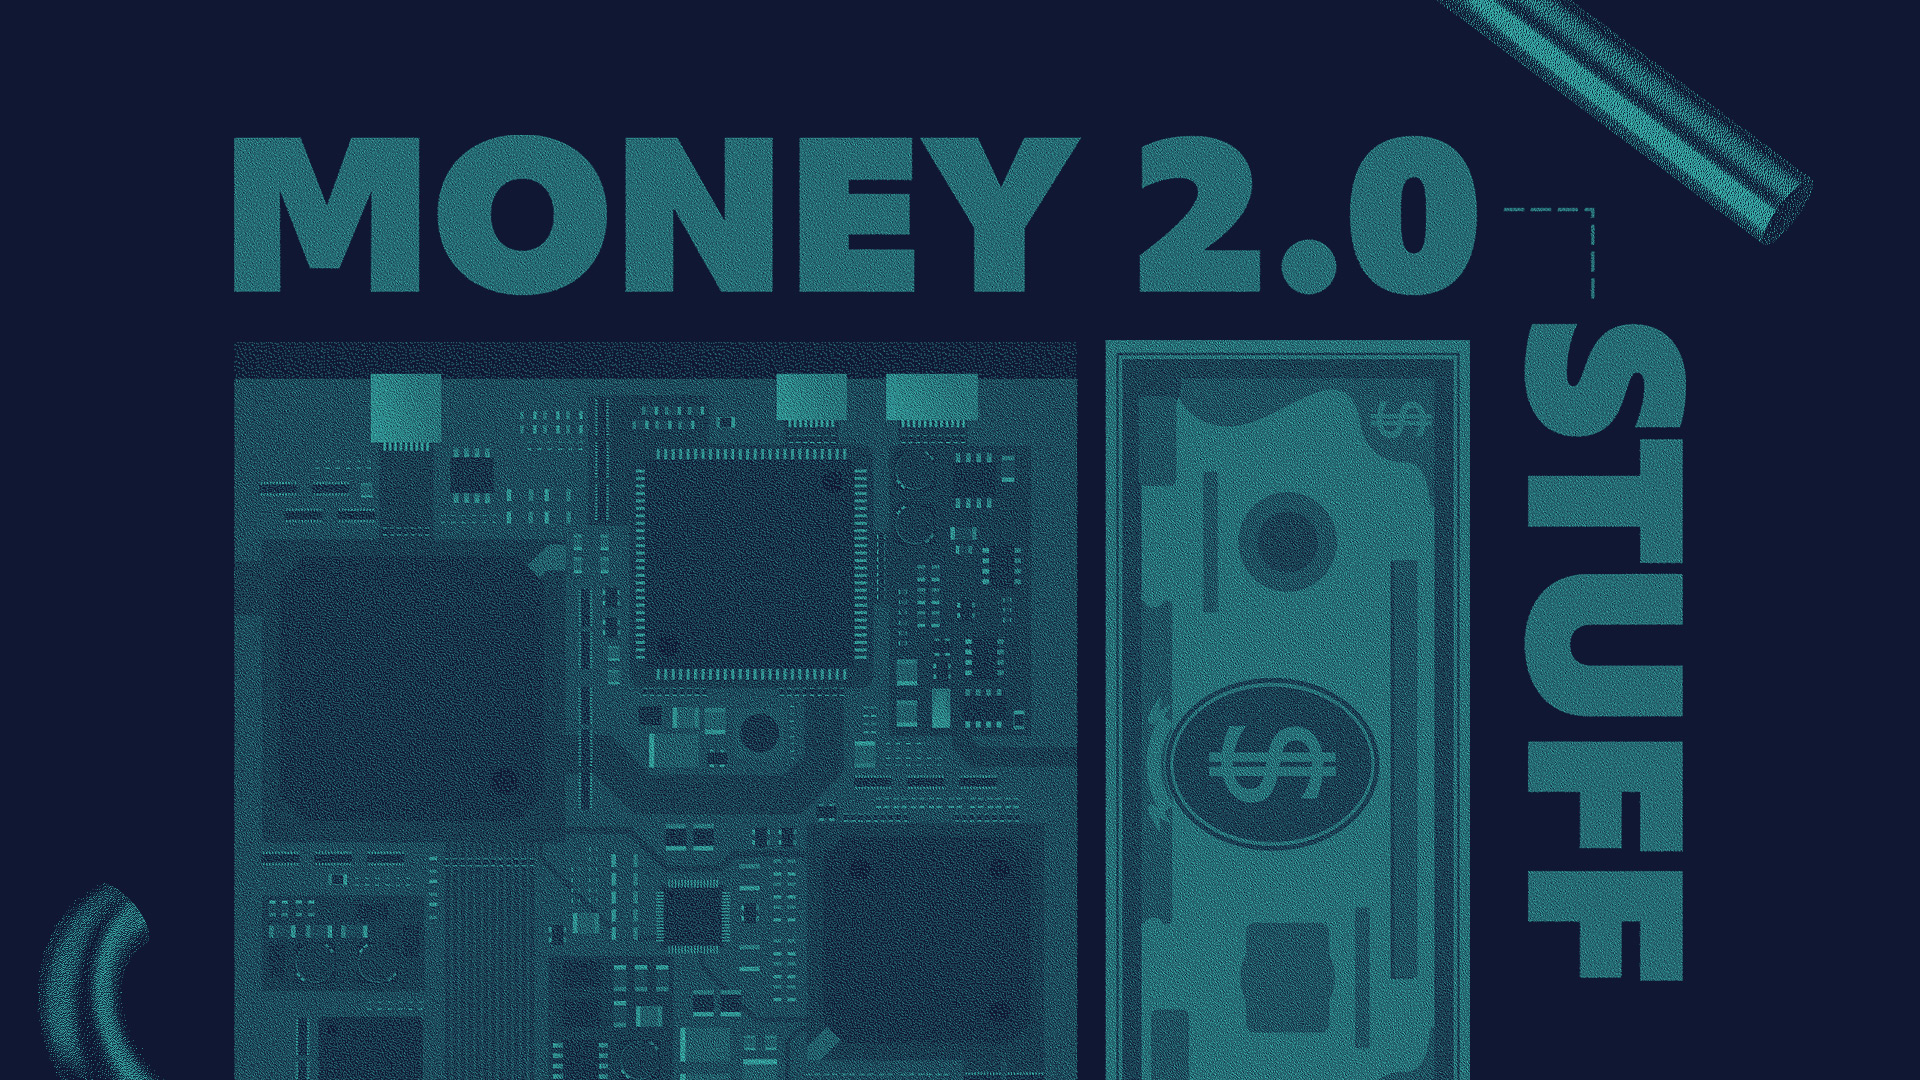 Money 2.0 Stuff: One must imagine Satoshi dead